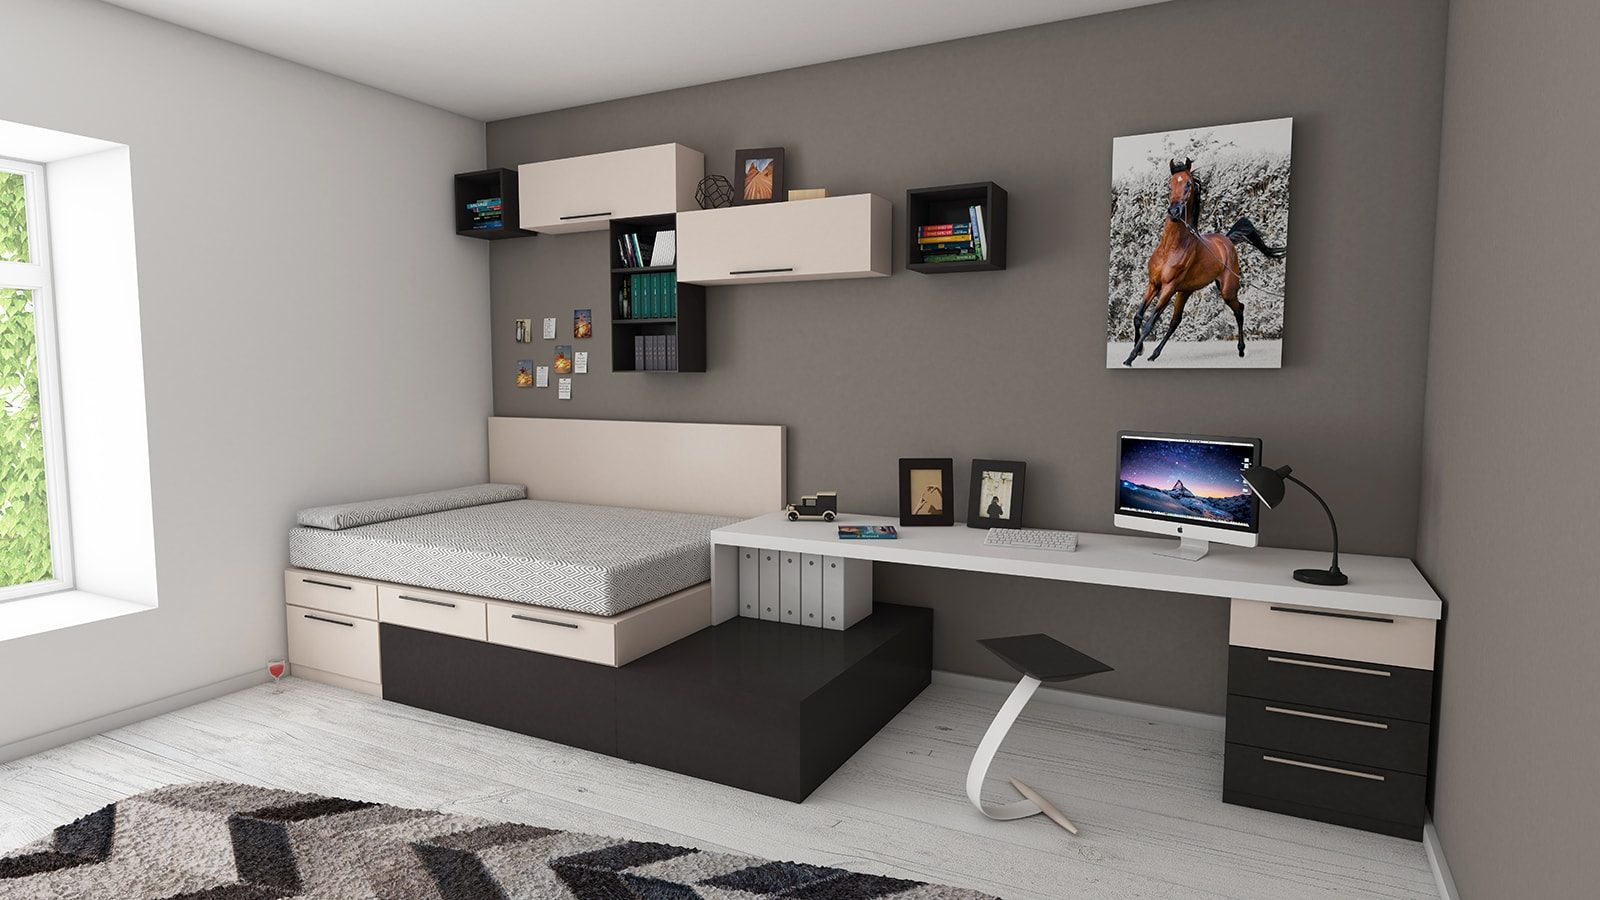 8 Practic and Versatile Murphy Beds for Small Spaces